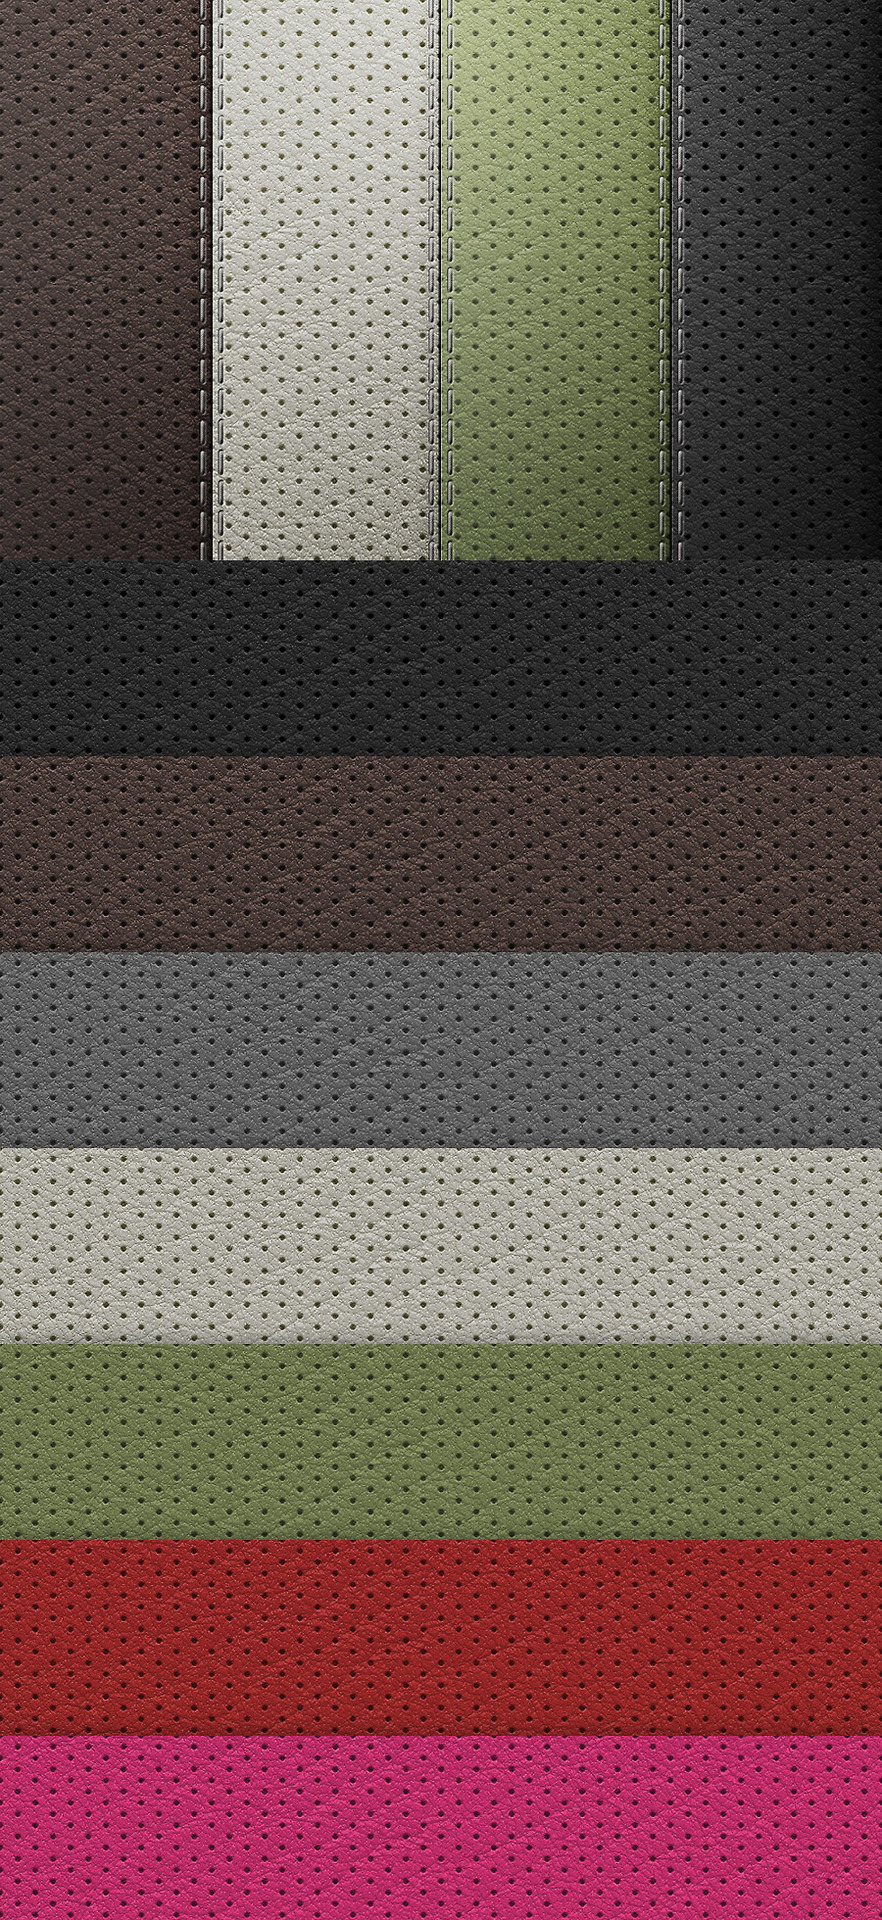 Leather Textures clipart lathe Leather Texture Set Free Perforated